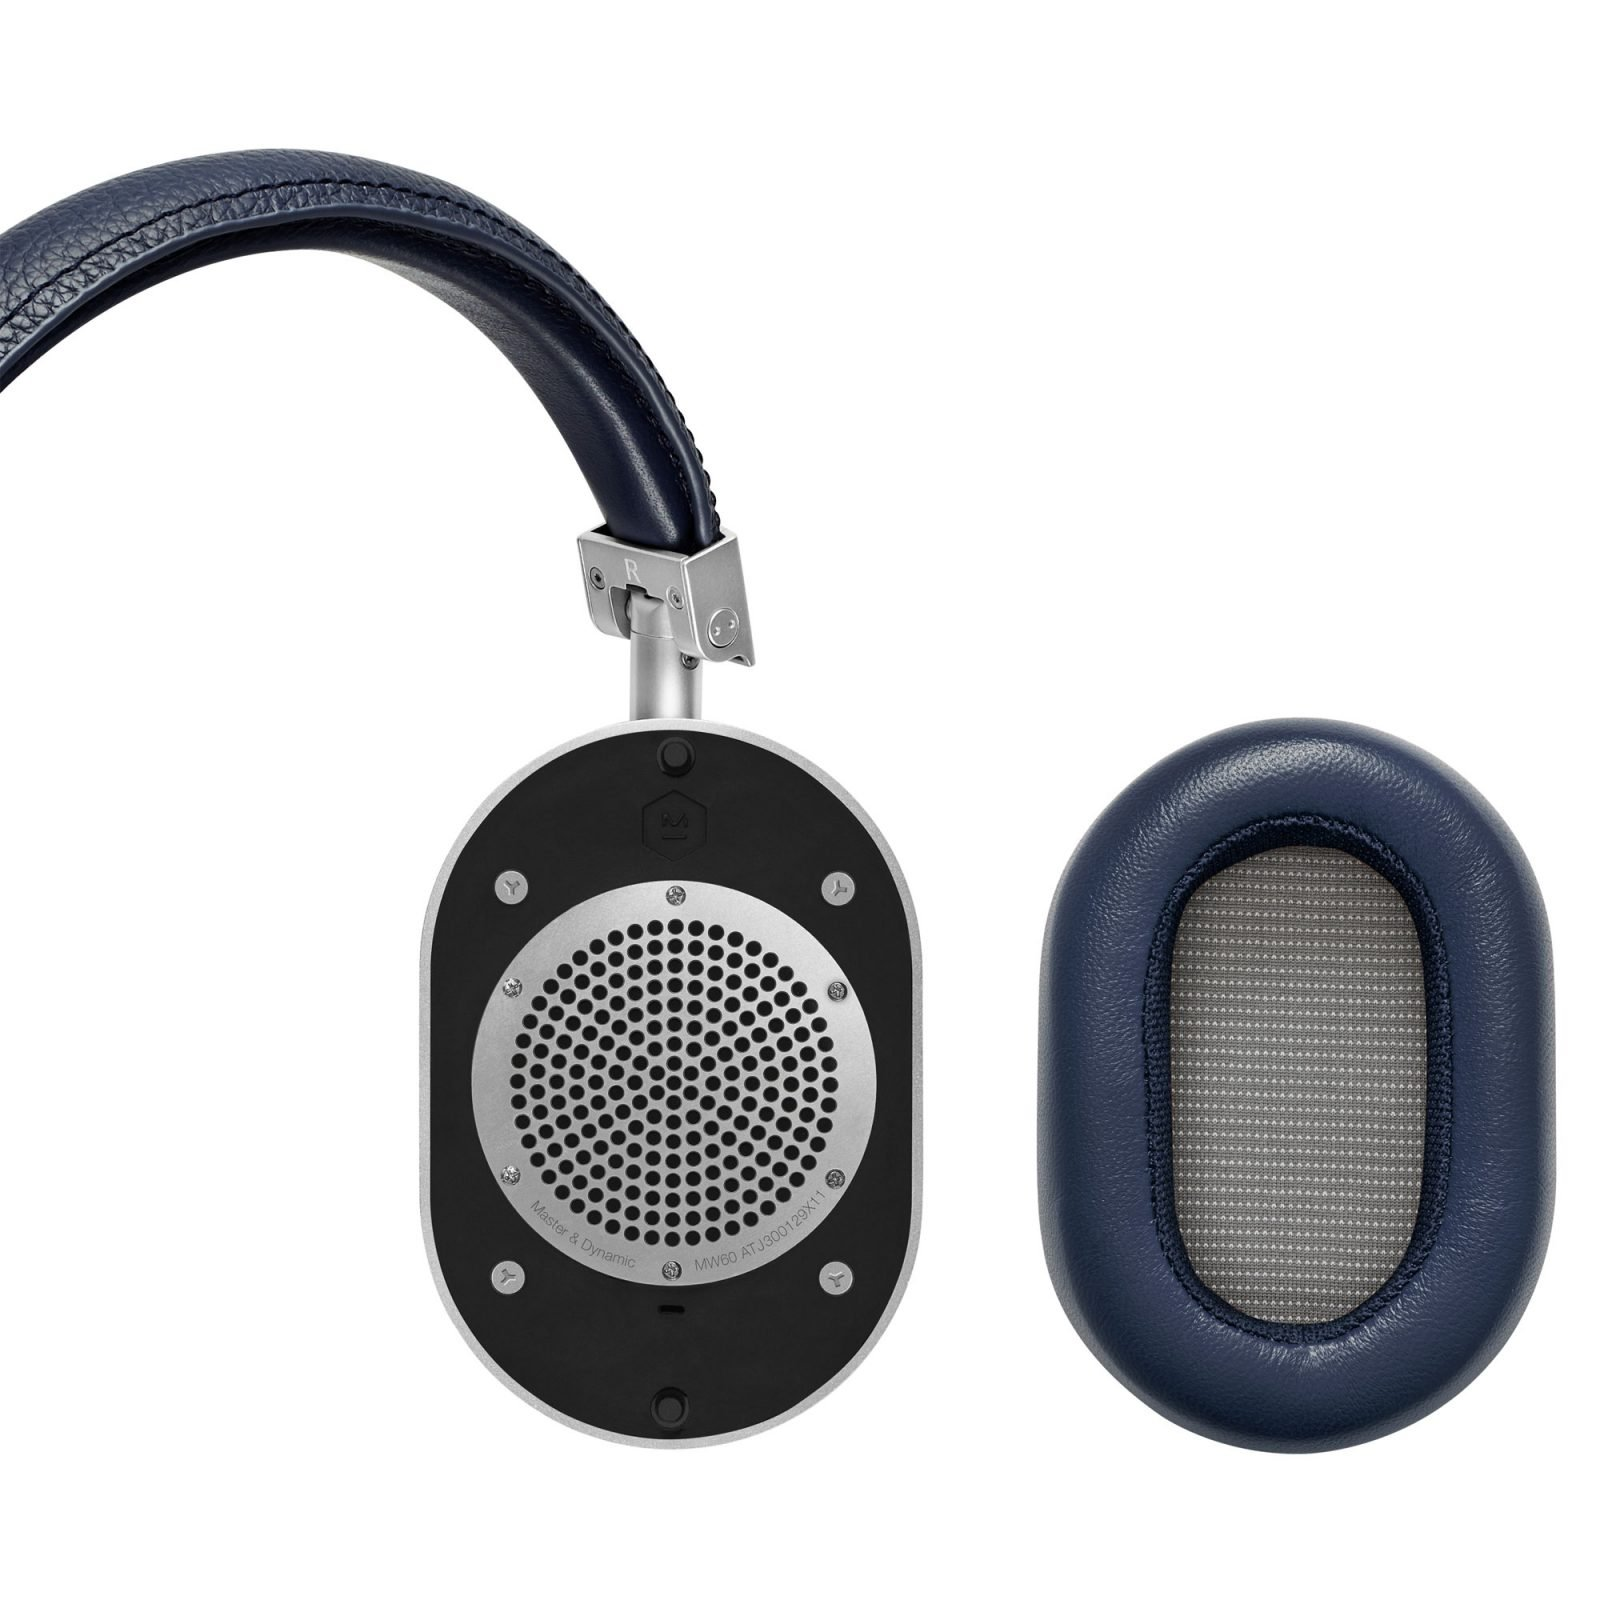 mw60-wireless-over-ear-headphones-silver-navy-7